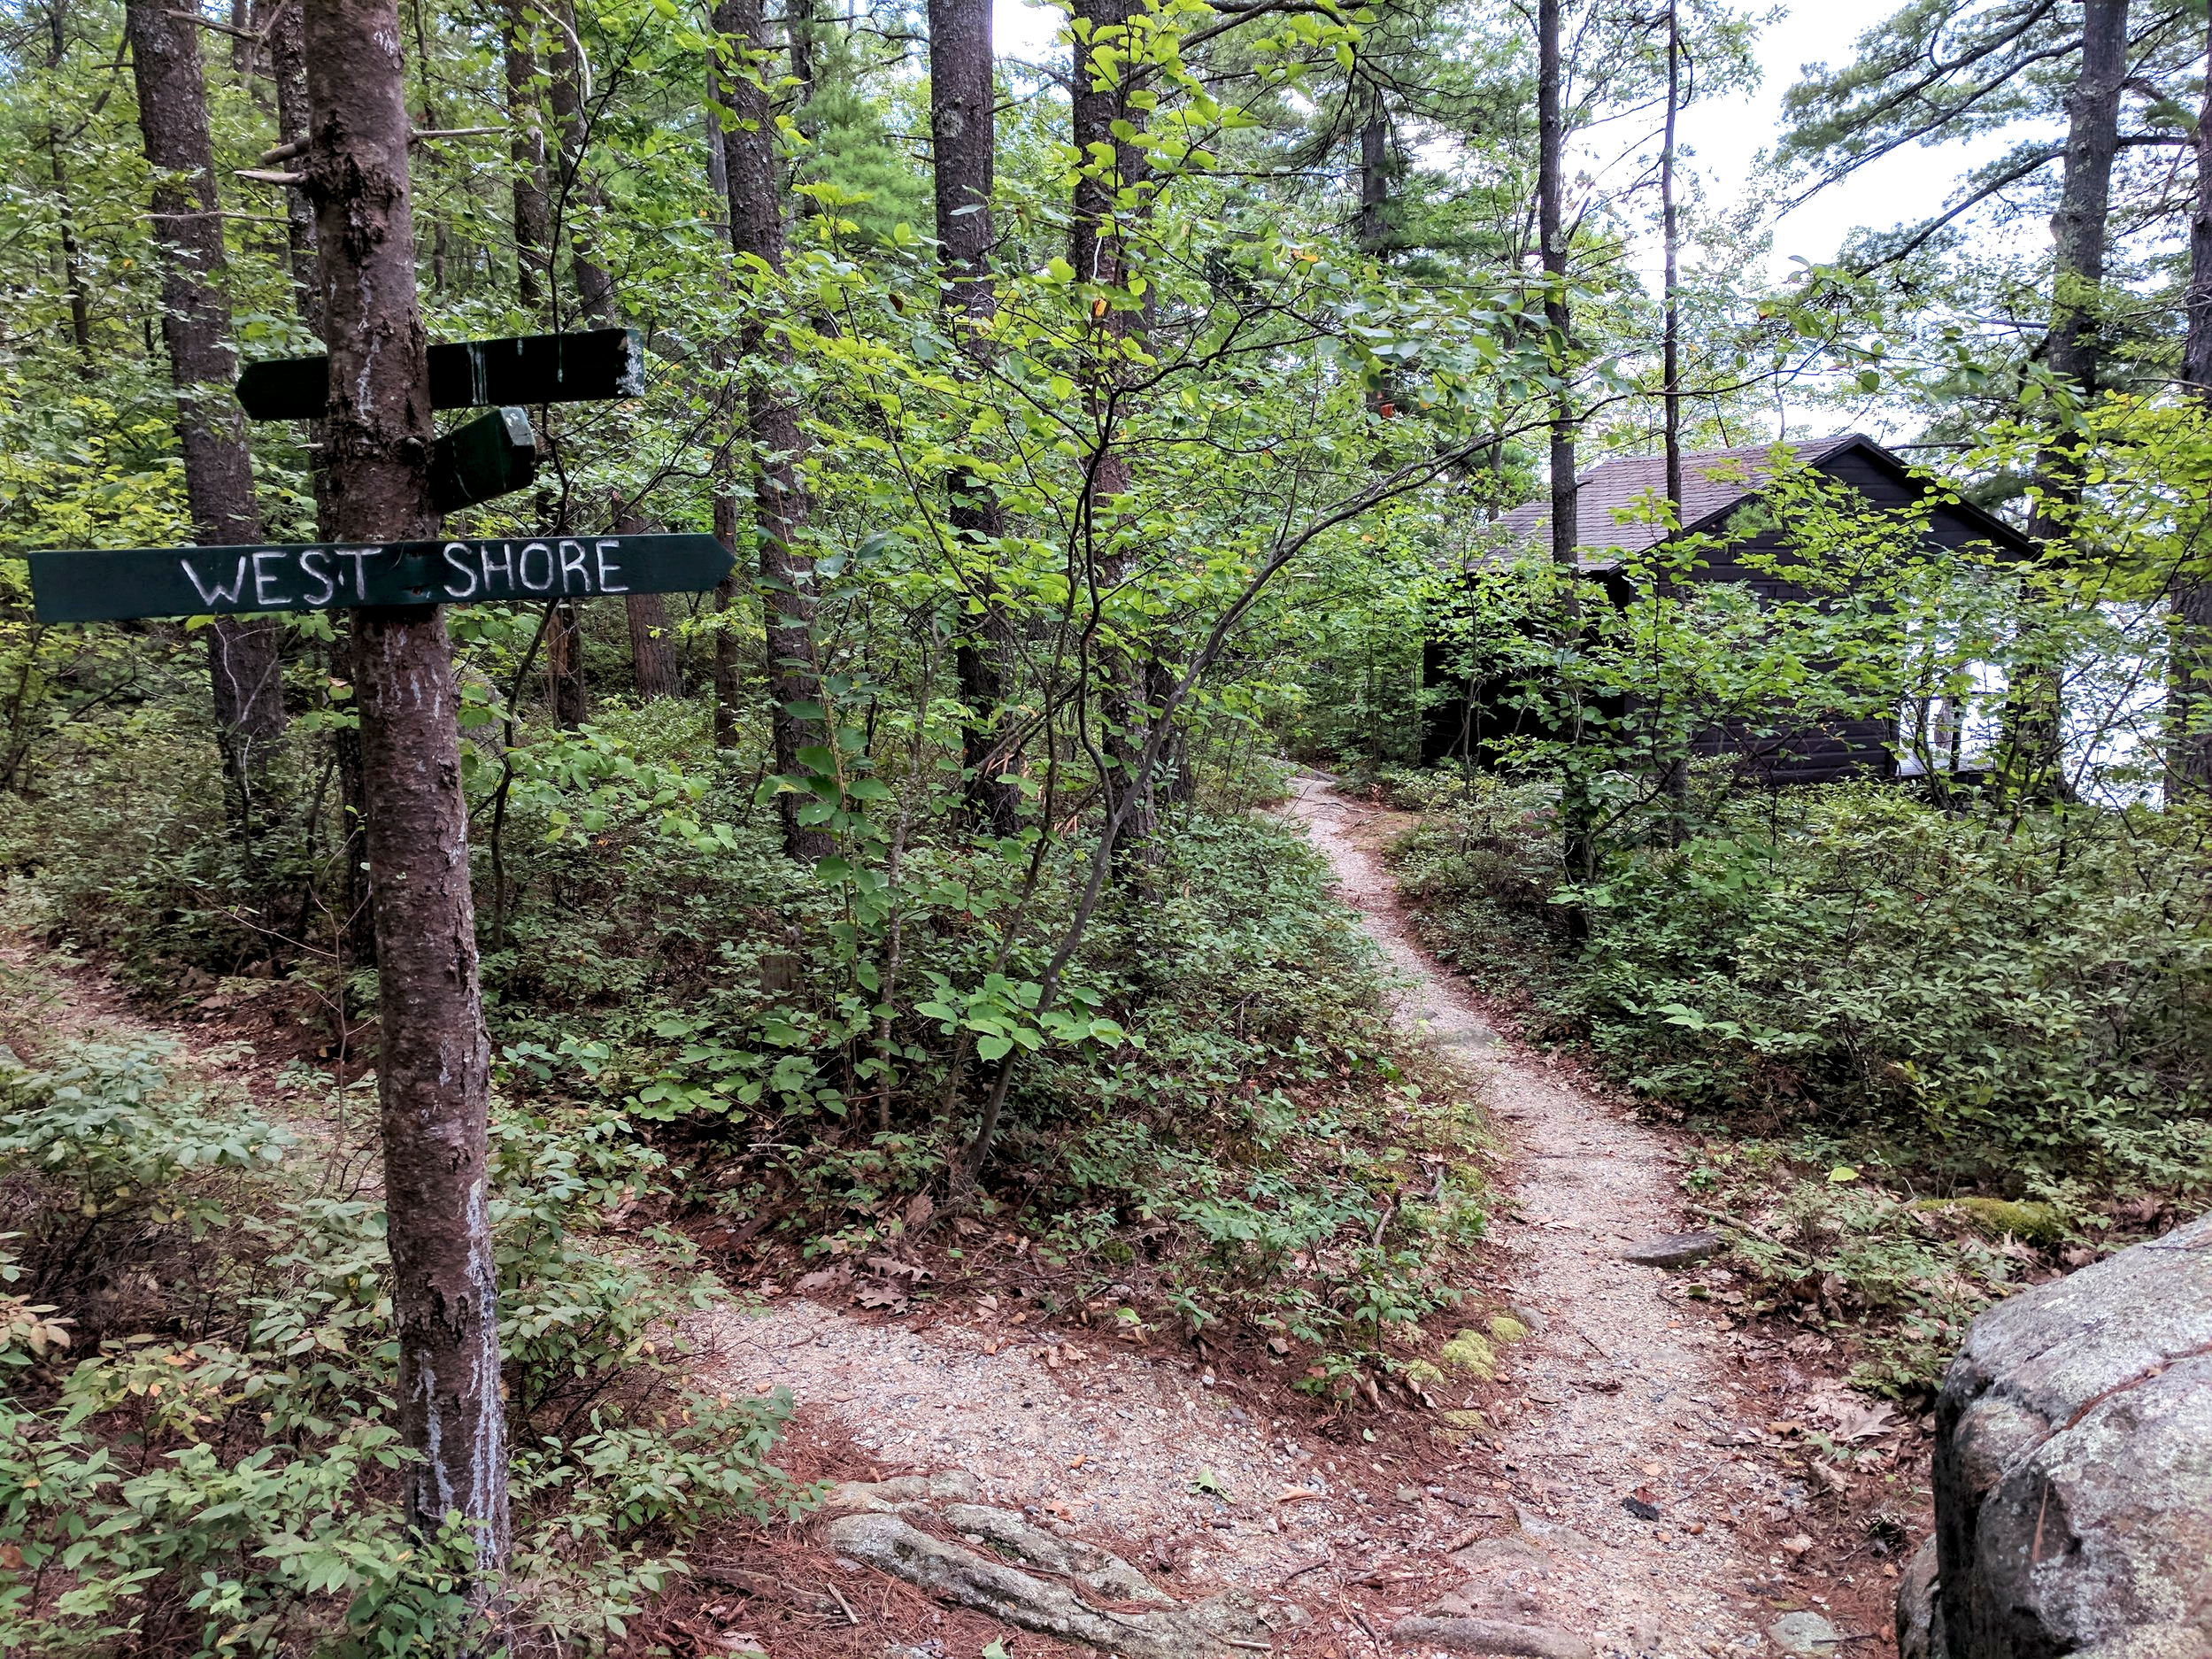 43 Beautiful Acres - The island also contains walking trails, a tennis court and volleyball court, a horseshoe pit, a rhododendron swamp, a tree trail, small sandy beaches, and composting toilets and outhouses.